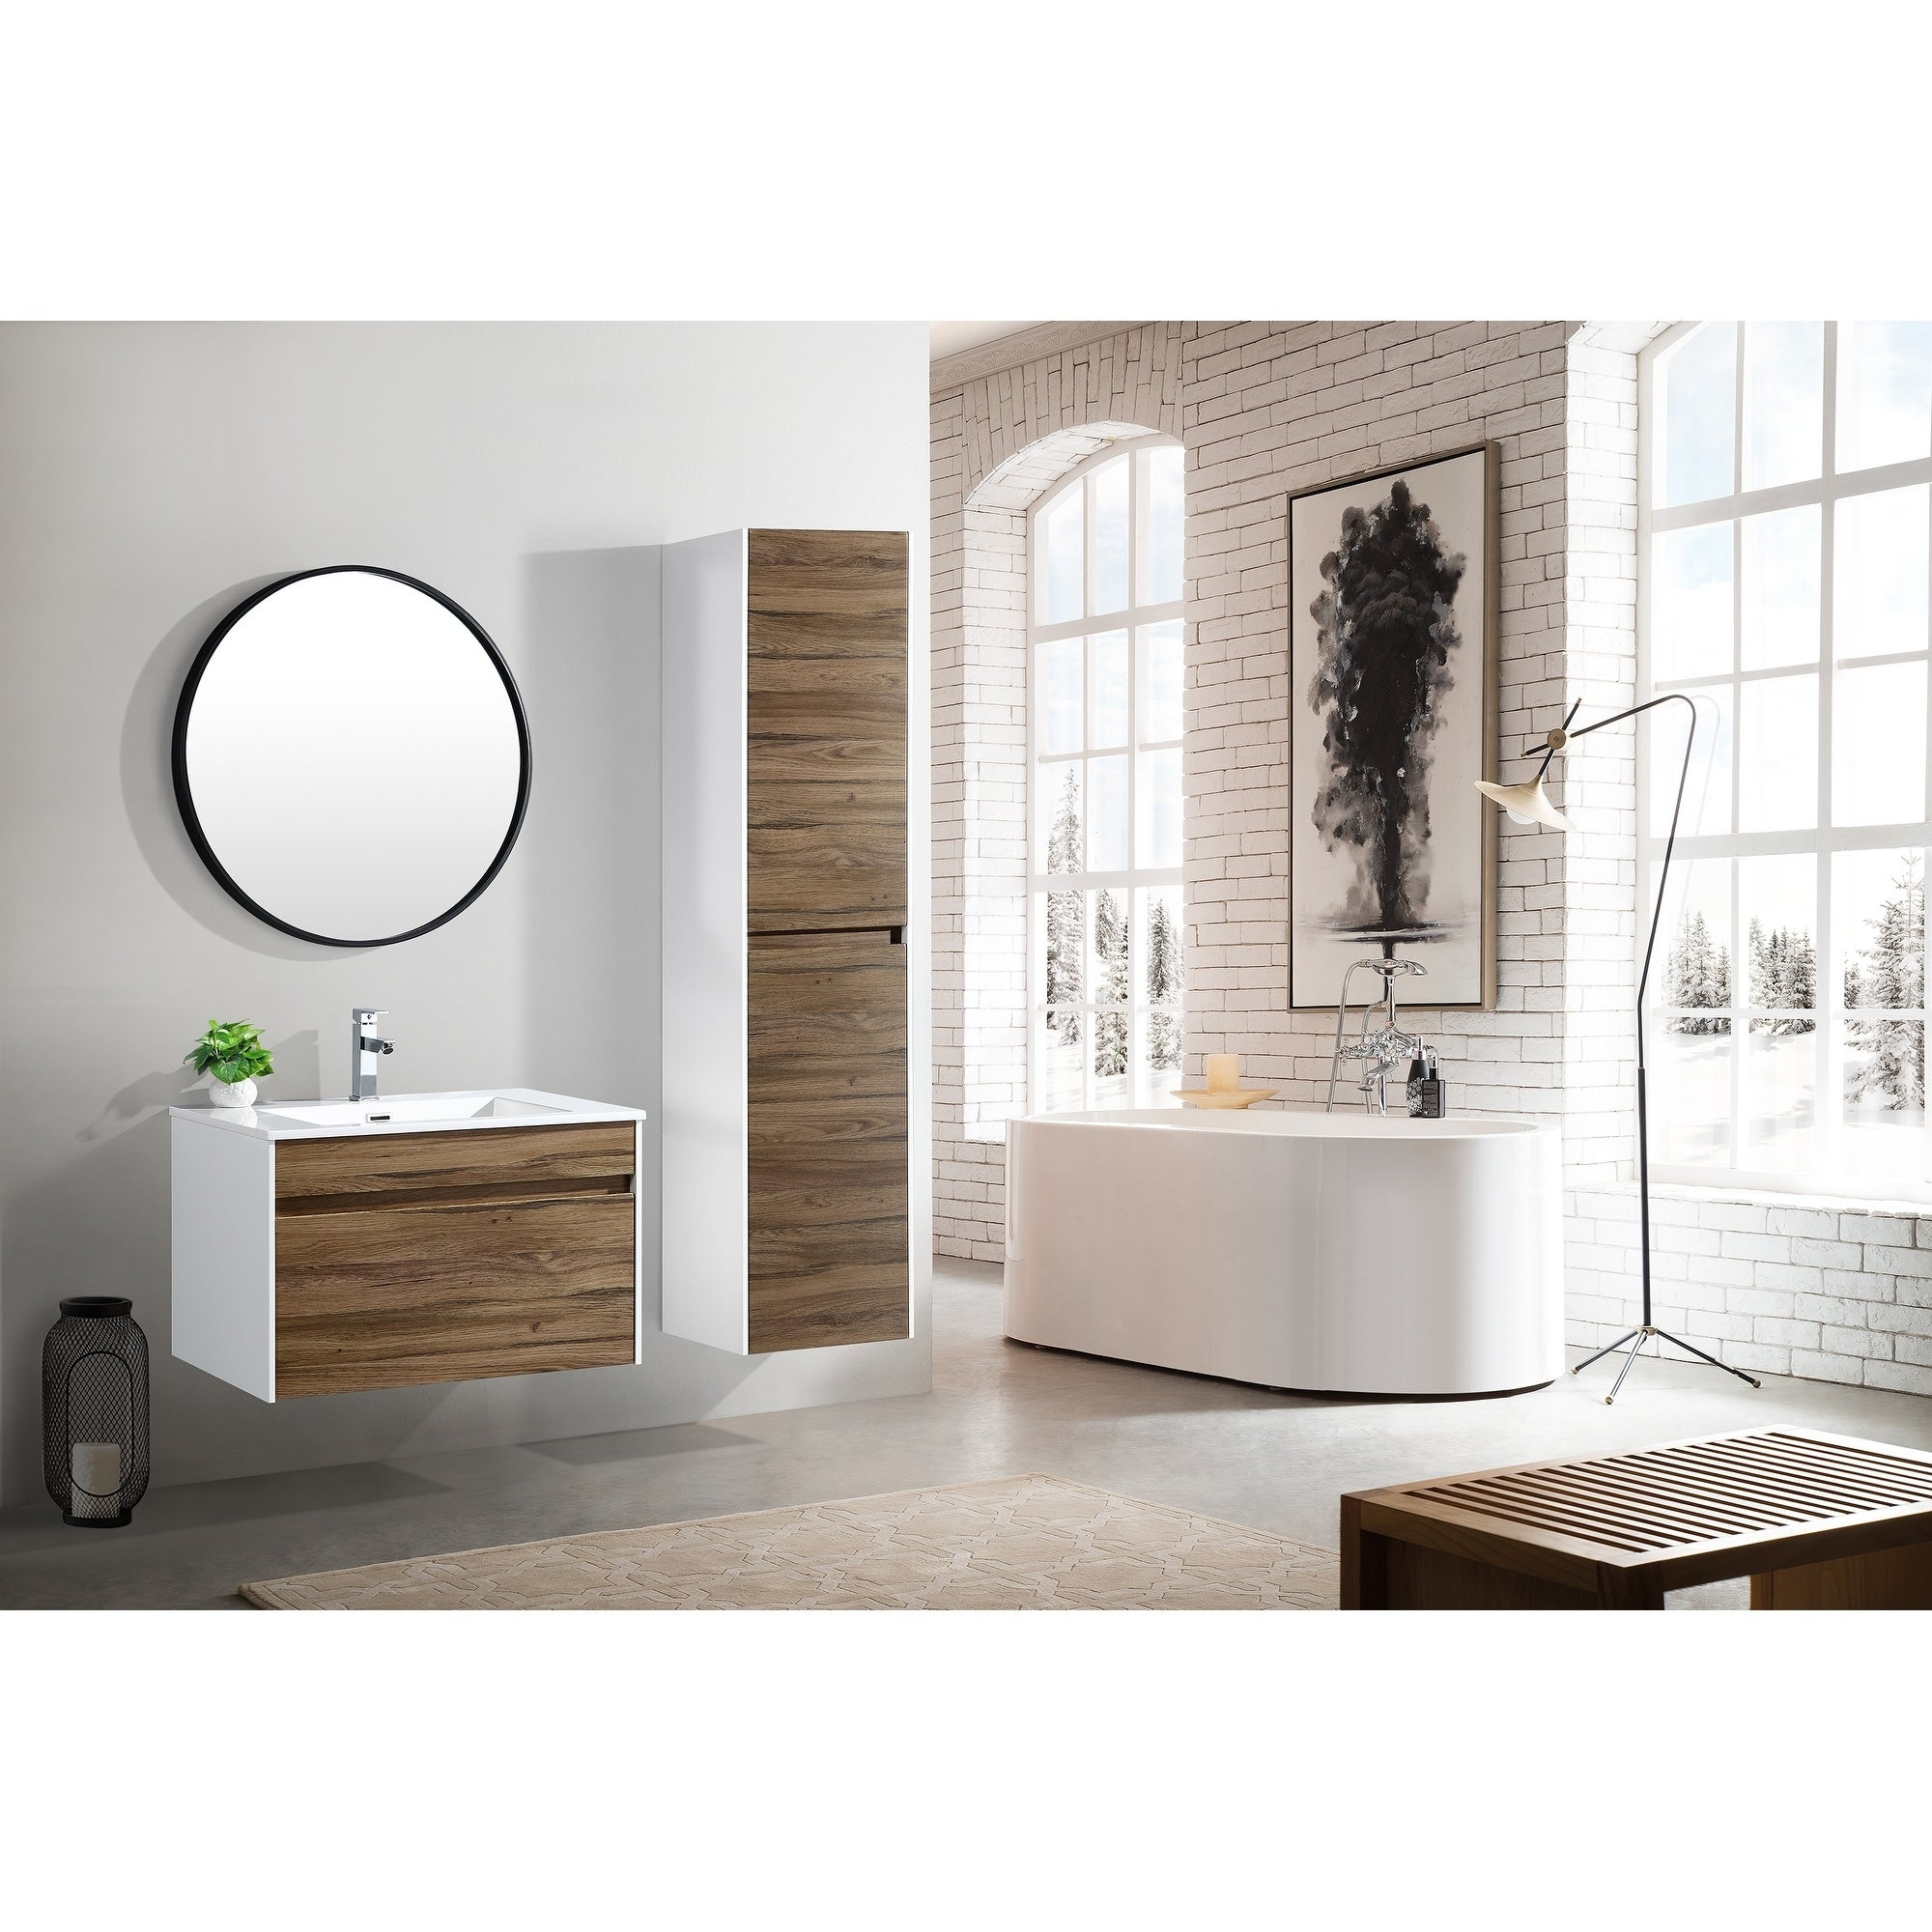 The Ivy Collection 30 Inch Floating Modern Bathroom Vanity Overstock 20979050